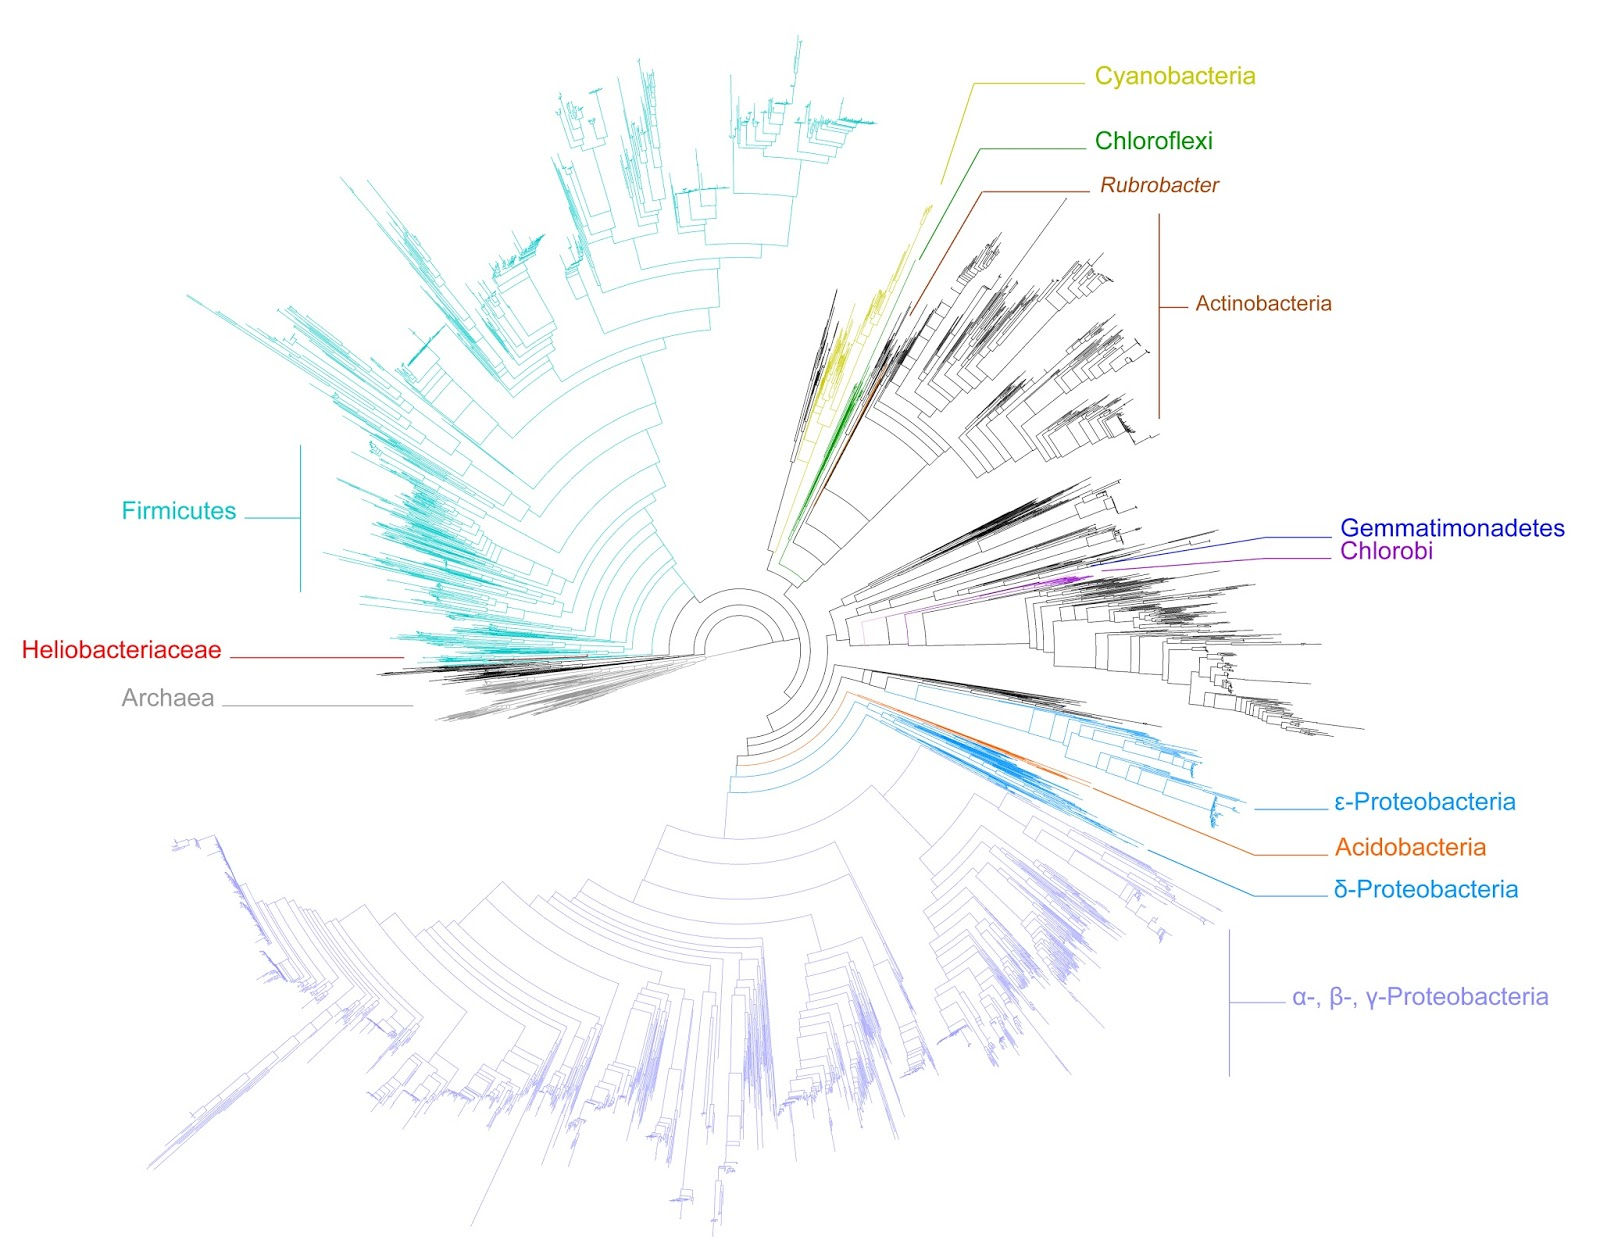 hight resolution of tree of life highlighting phototrophic clades the tree is taken from segata et al 2013 it s open access and freely available